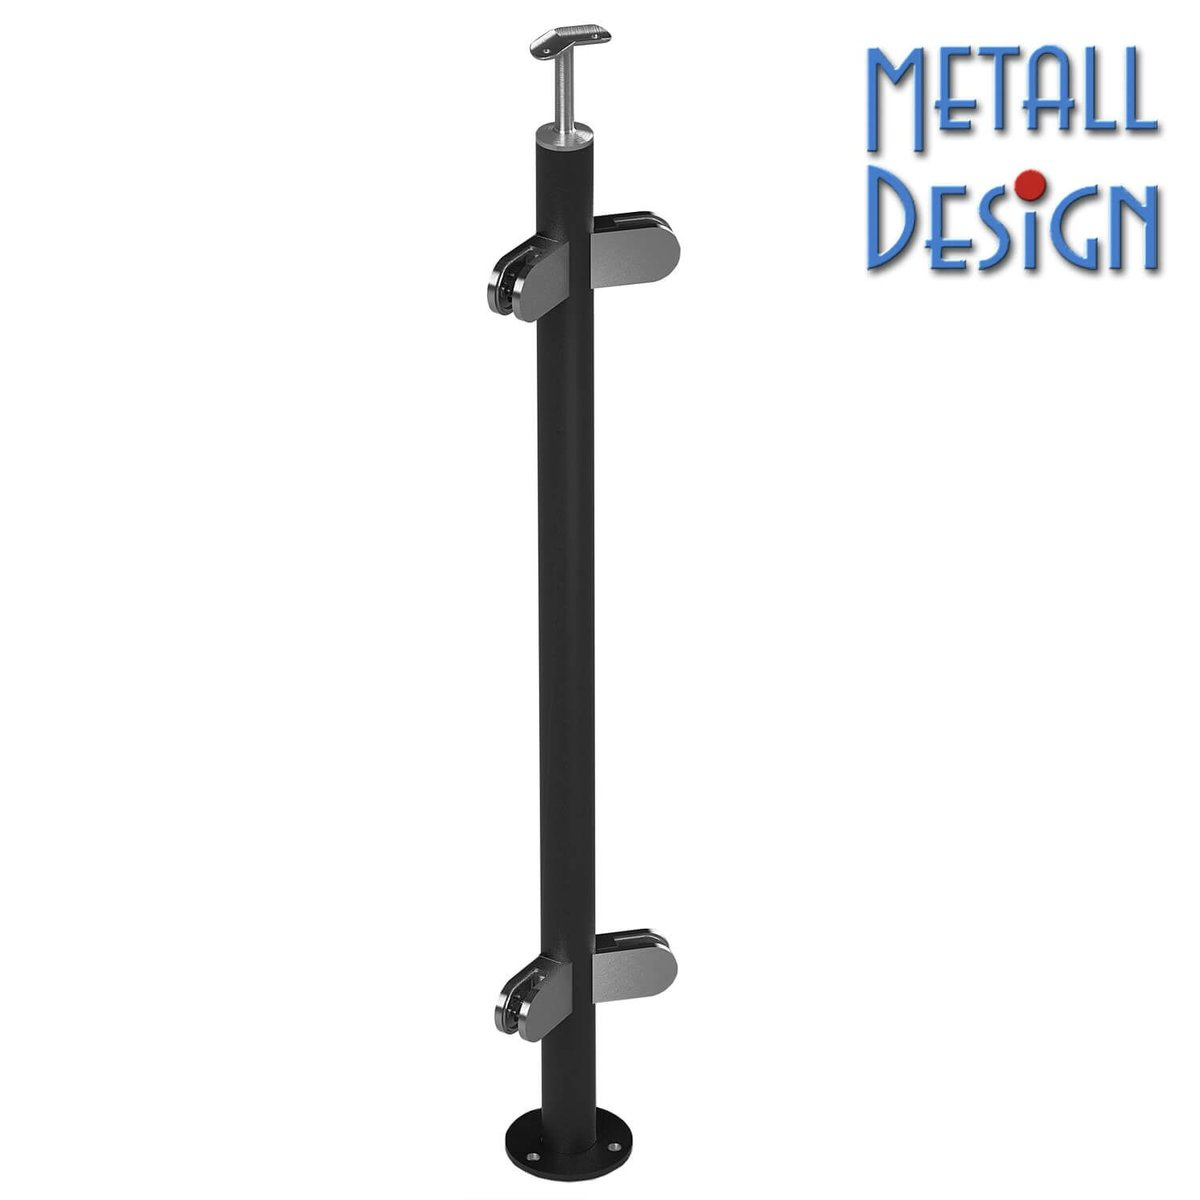 Ral Farben Metall Metall Design On Twitter